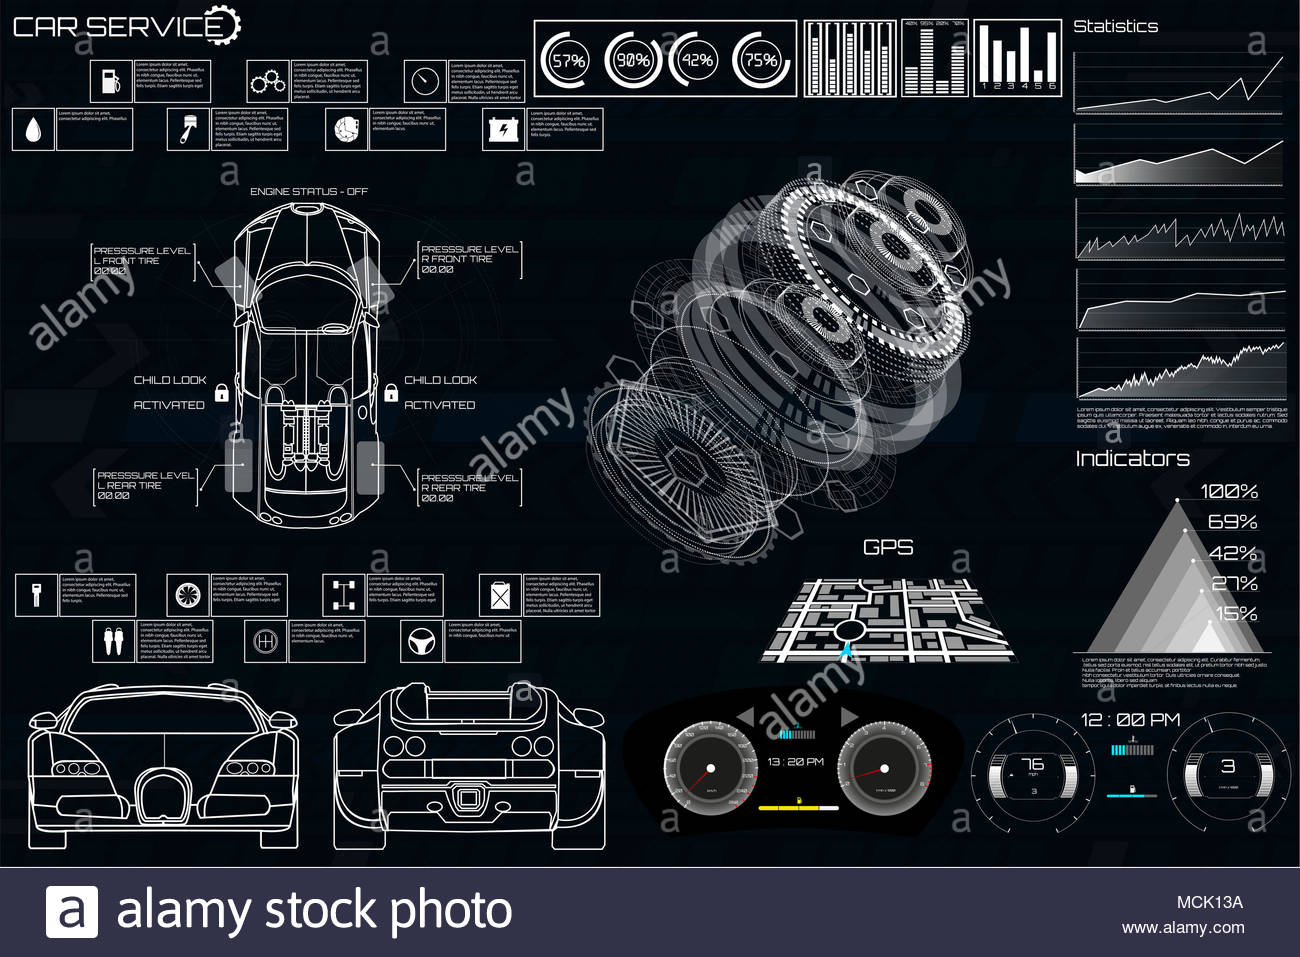 Mechanisms Stock Photos Images Alamy Steampunk Engineering Schematics Car Service In The Style Of Hud Cars Infographic Ui Analysis And Diagnostics